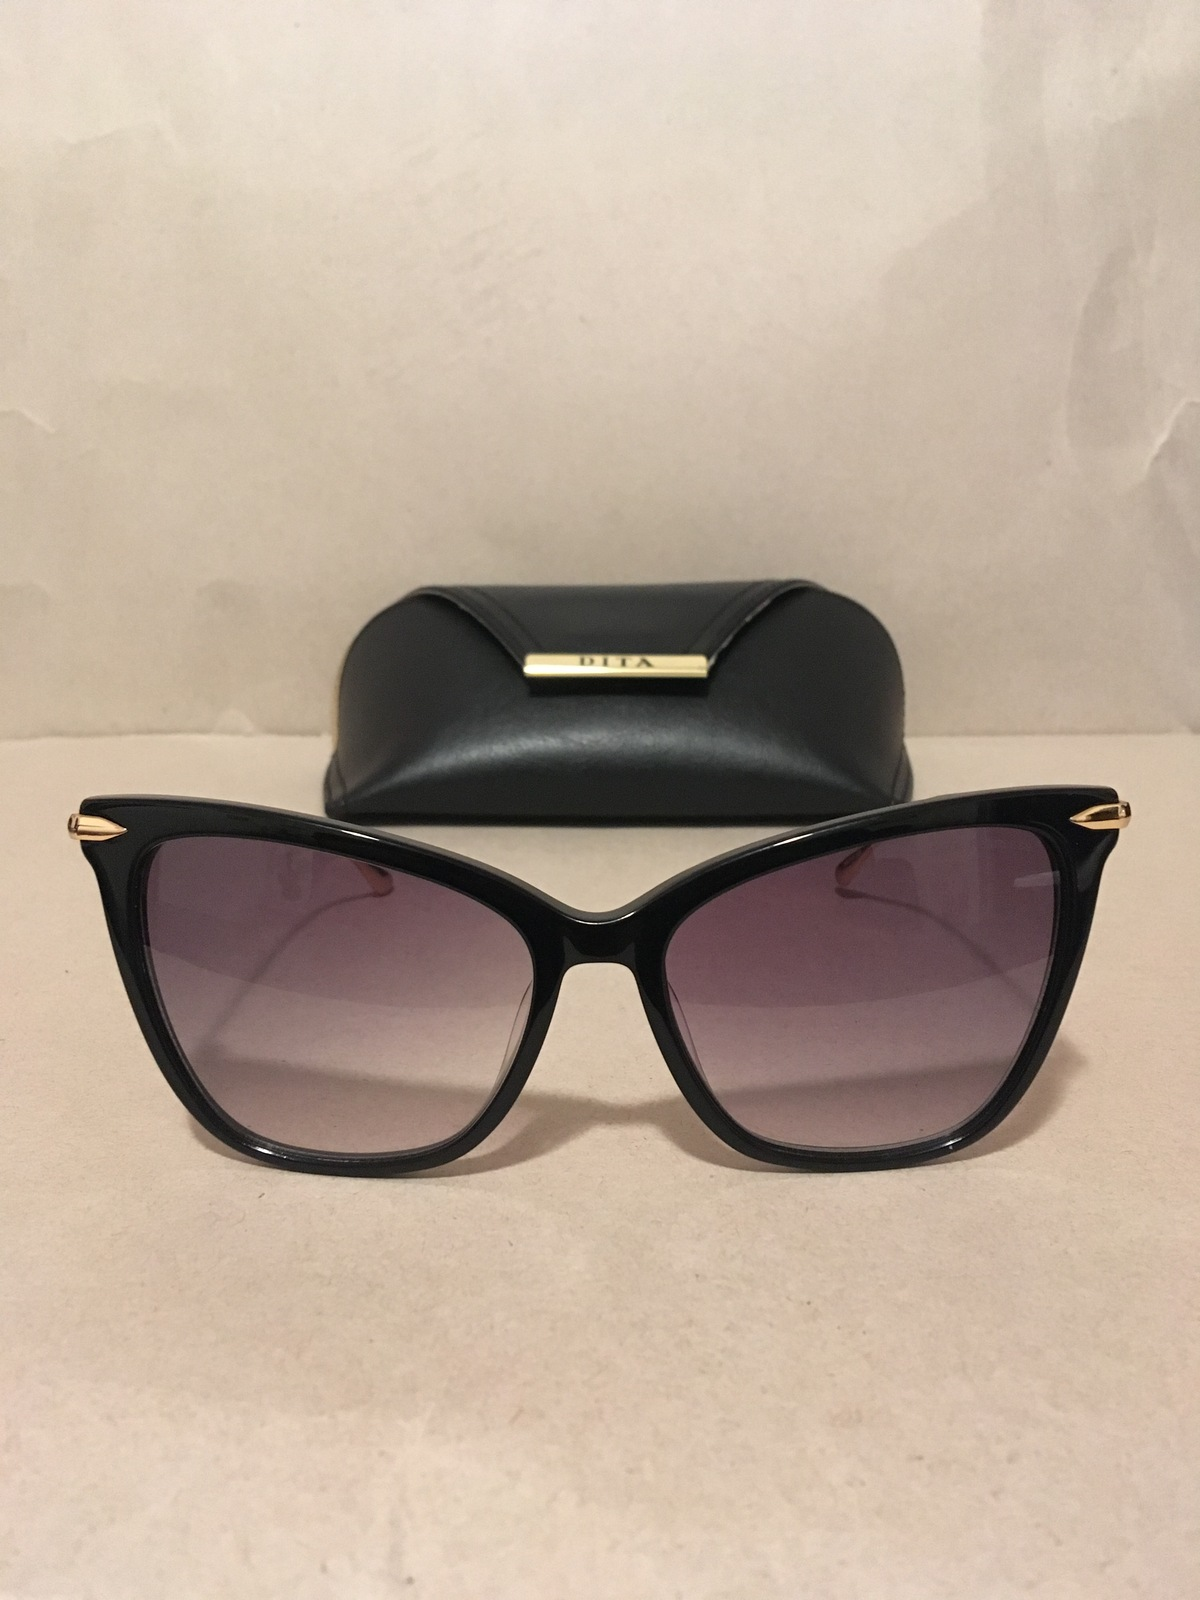 New Women Dita Fearless Sunglasses Black and Gold Frame with Purple Lens - $250.00